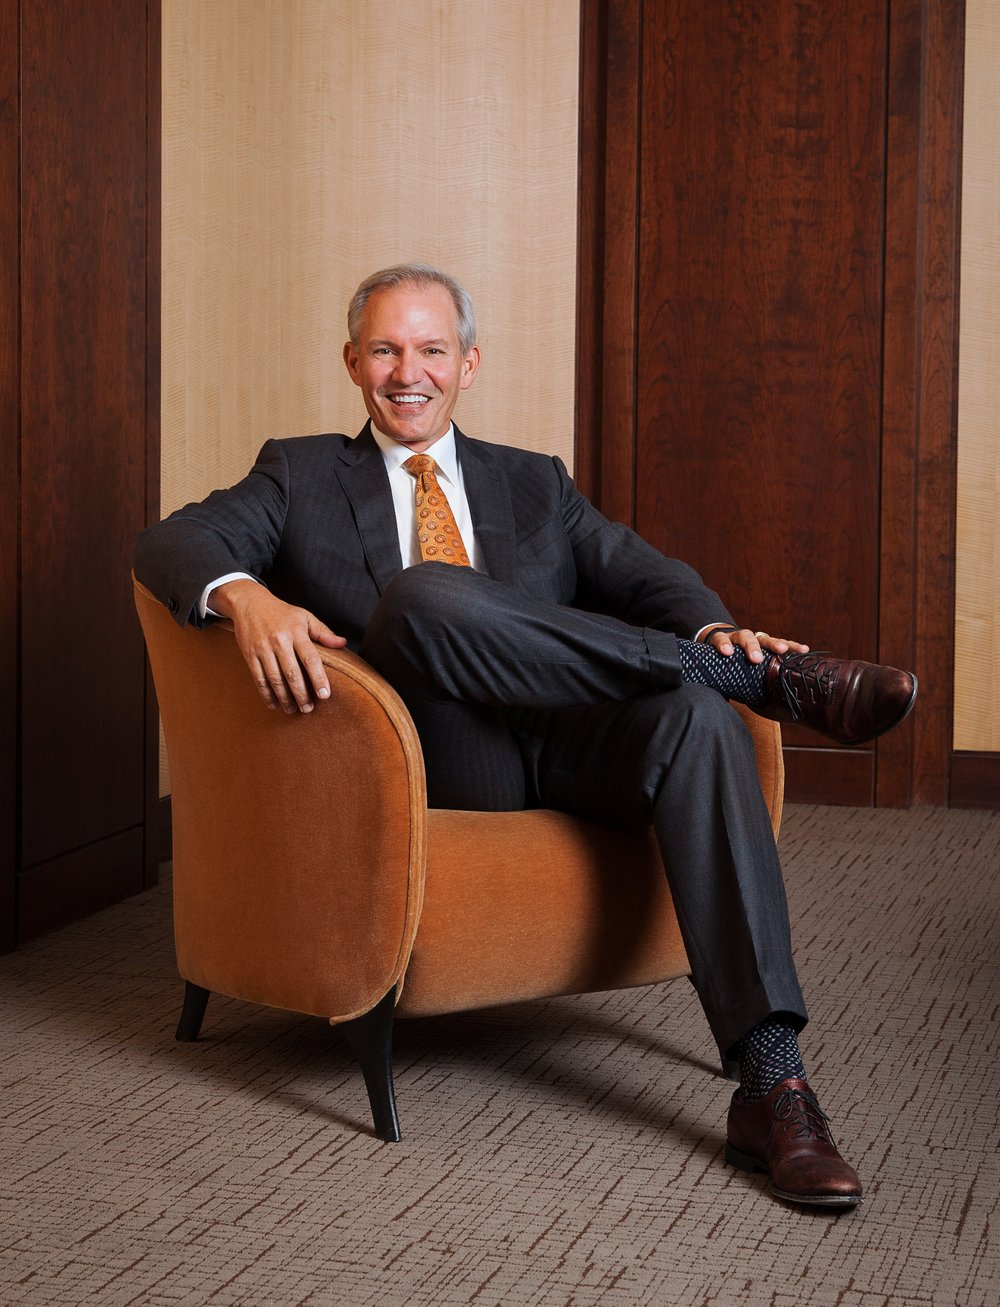 Greg Graves is retiring as CEO of Burns & McDonnell.